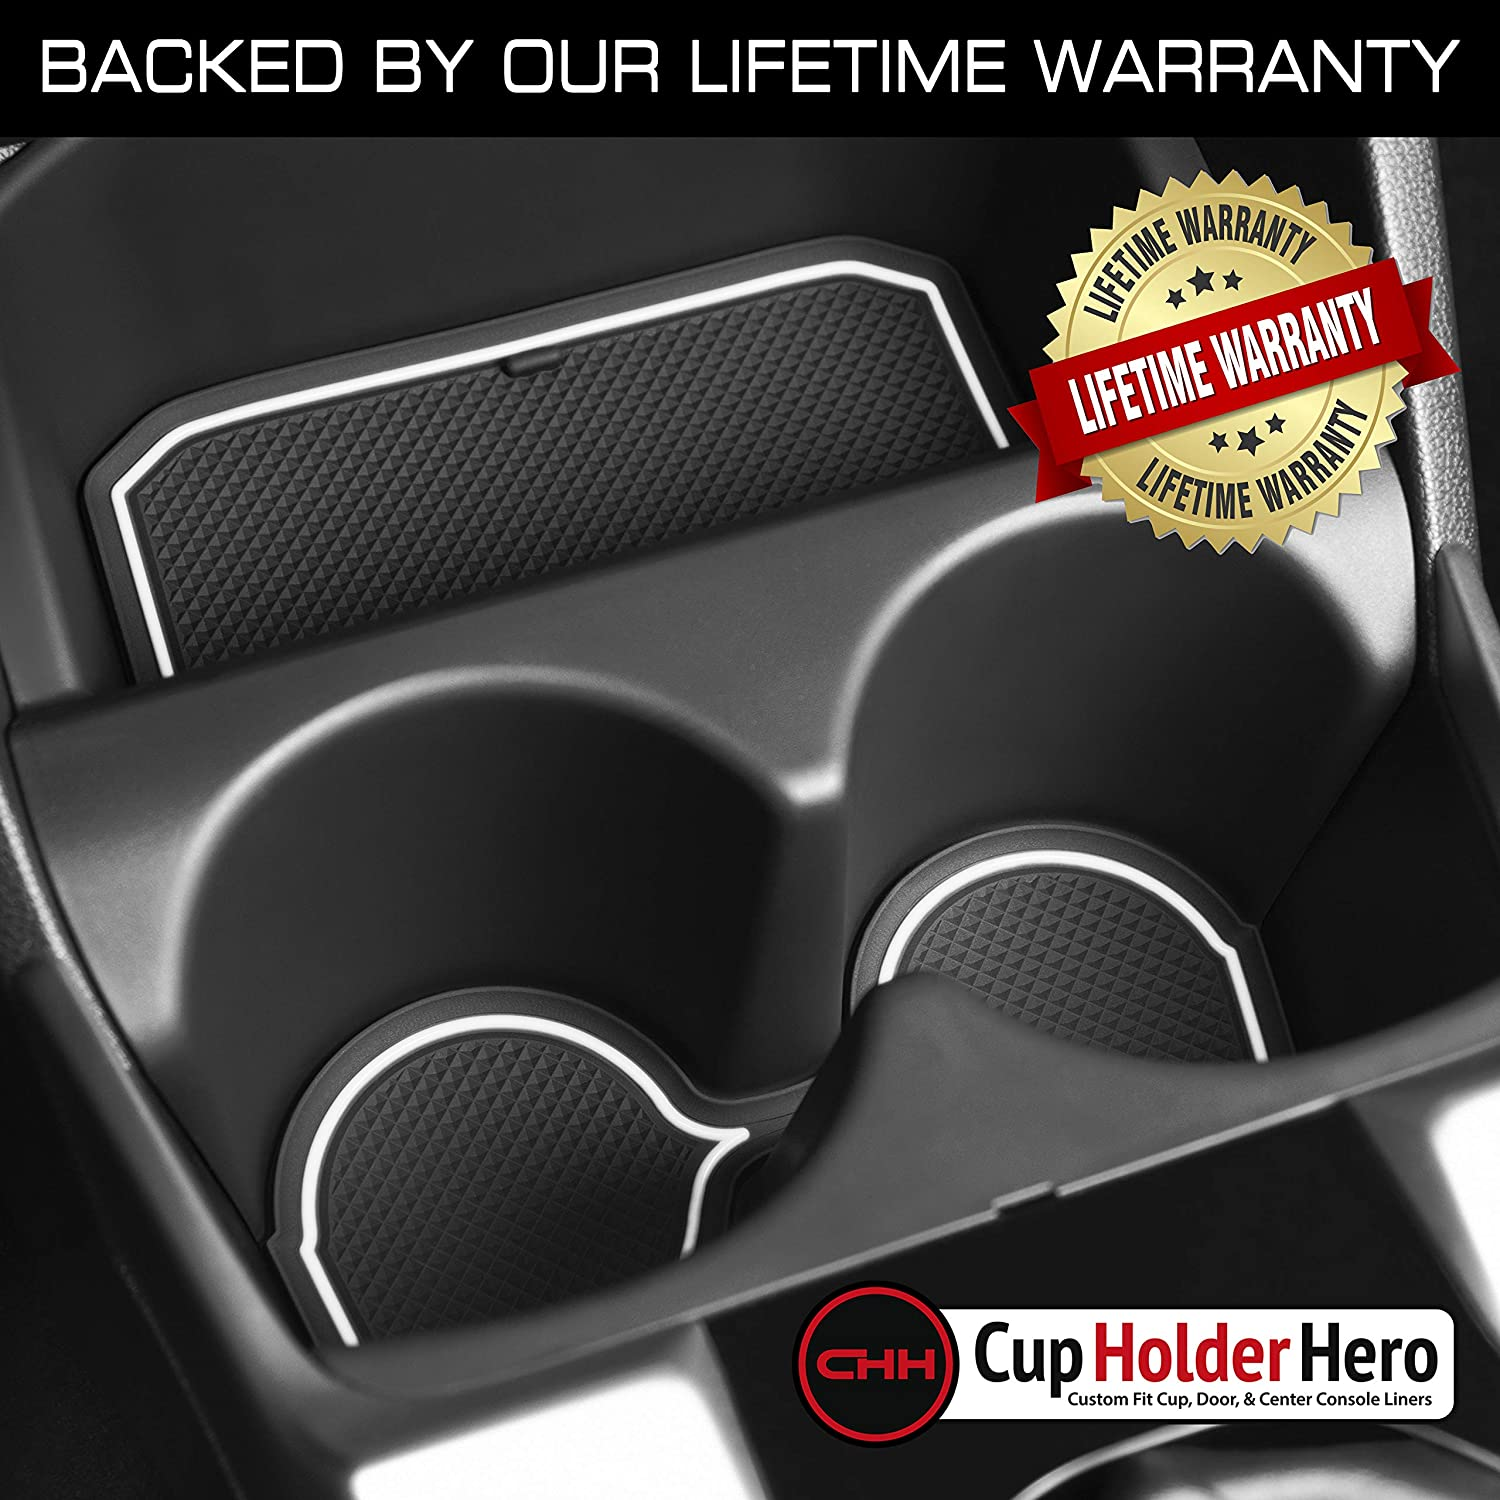 CupHolderHero for Honda Fit 2015-2020 Custom Liner Accessories Center Console White Trim and Door Pocket Inserts 13-pc Set Premium Cup Holder